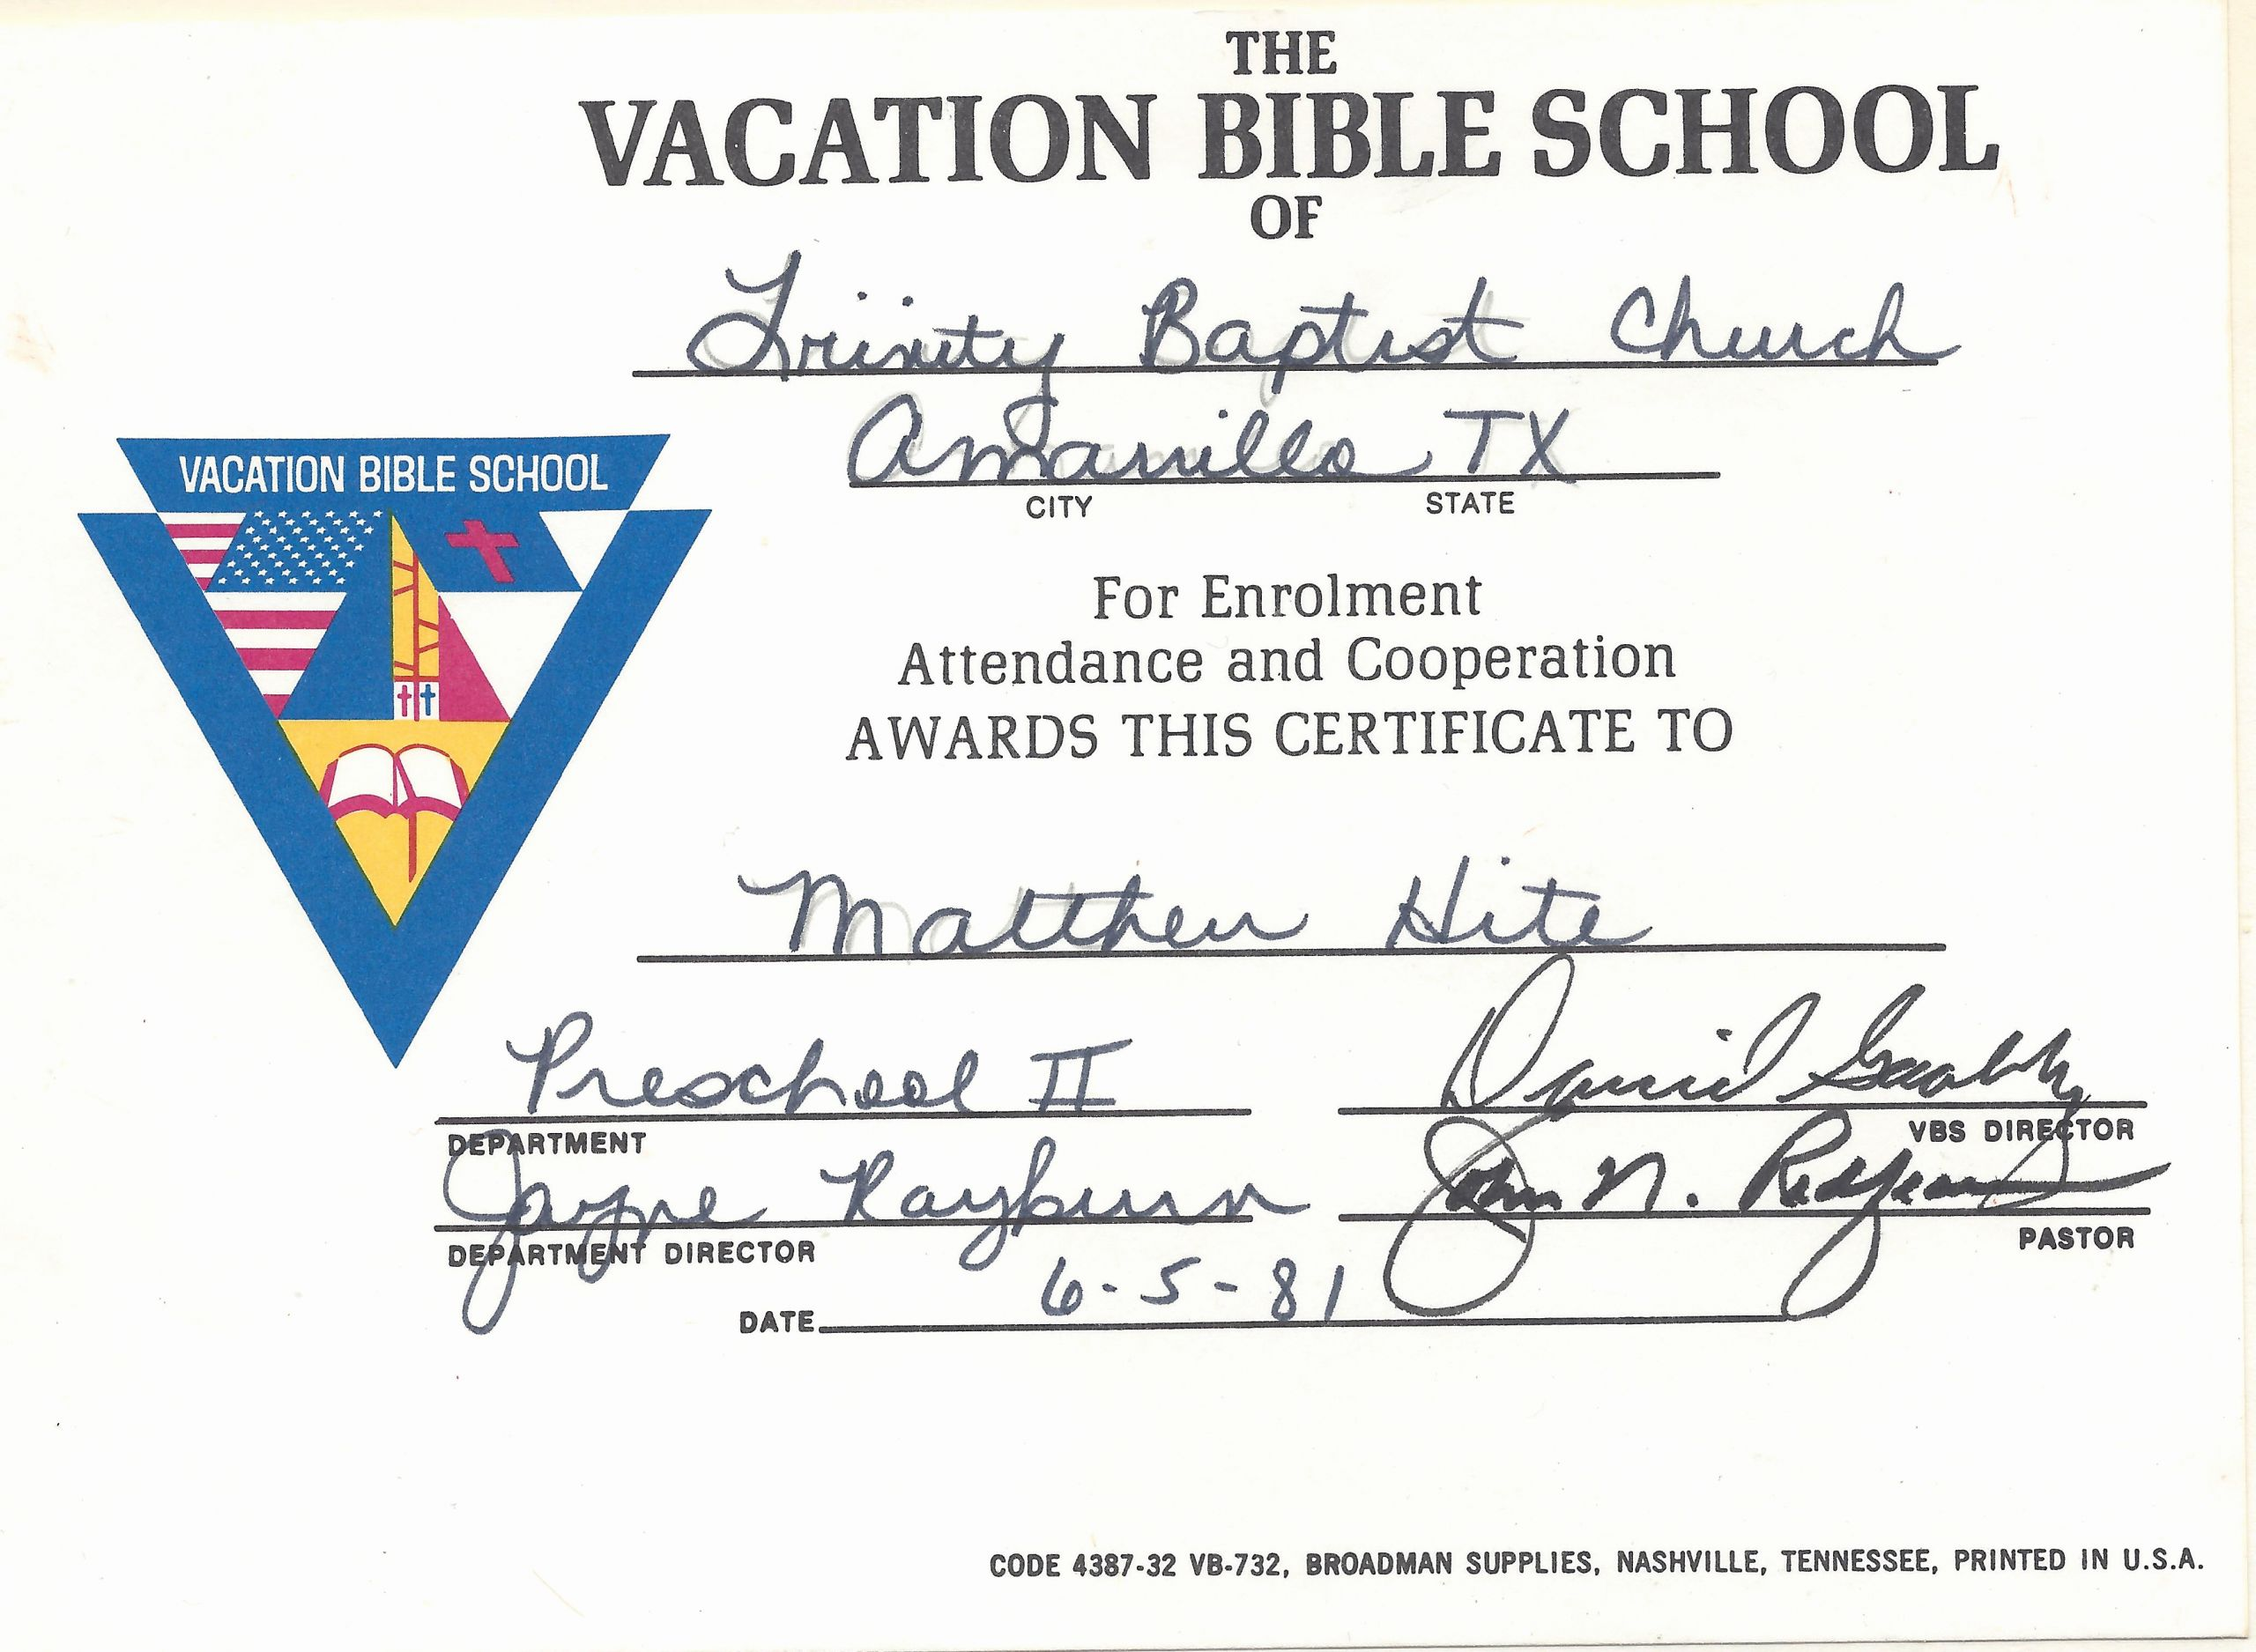 Vacation Bible School Certificates Printable Lovely Trinity Baptist Church – Matthew Walter Hite Amarillo Texas